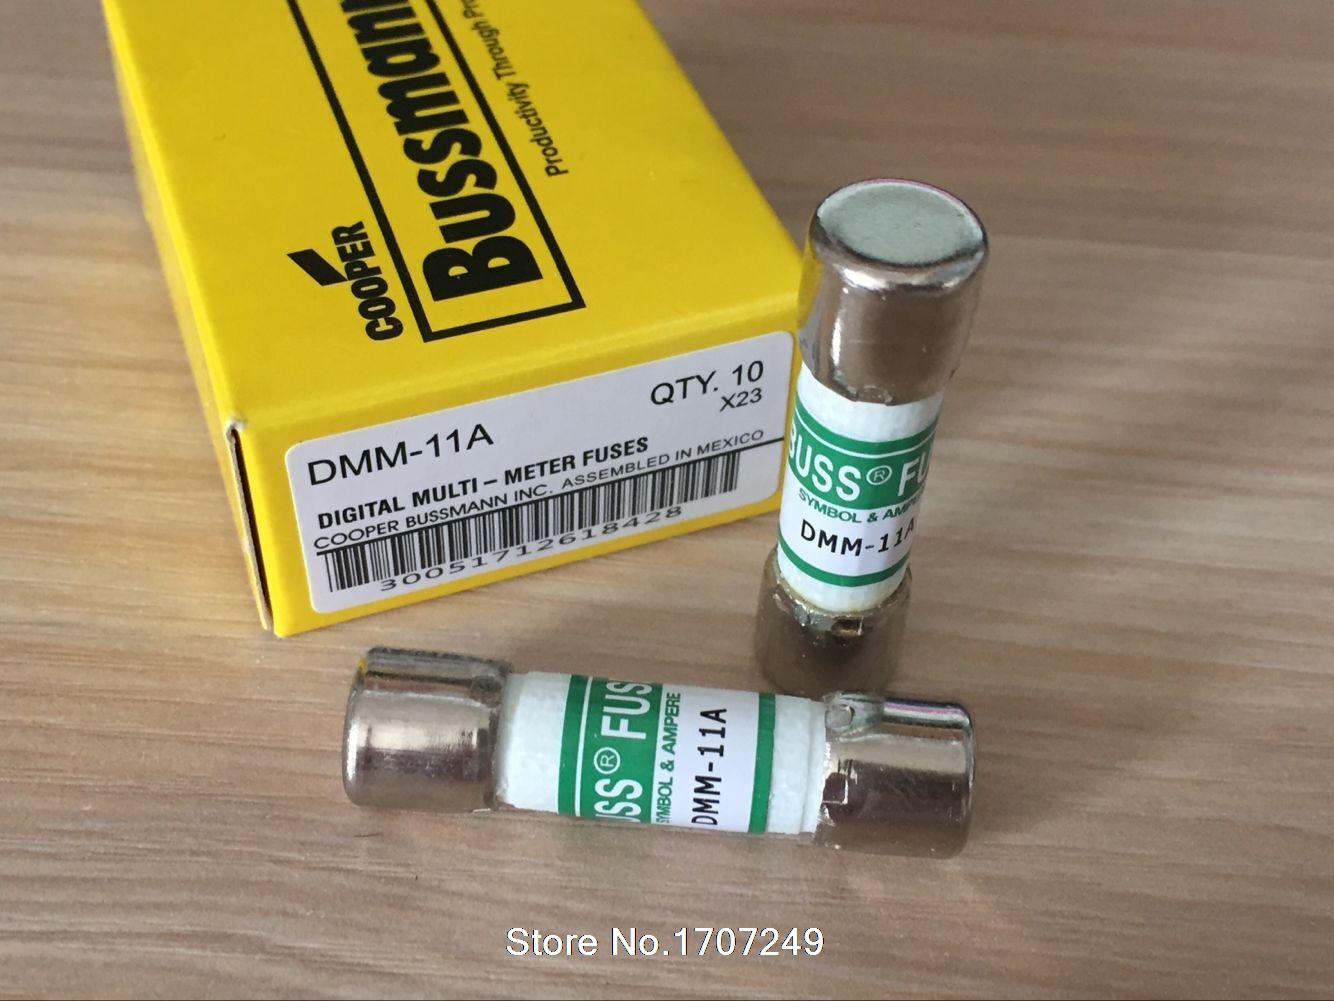 2Pcs BUSS fuses DMM-B-11A DMM-11A 10x38mm 1000V 11A DMM with fuse for fluke multimeter F87V/F175/F177/F179/F287/F289 image